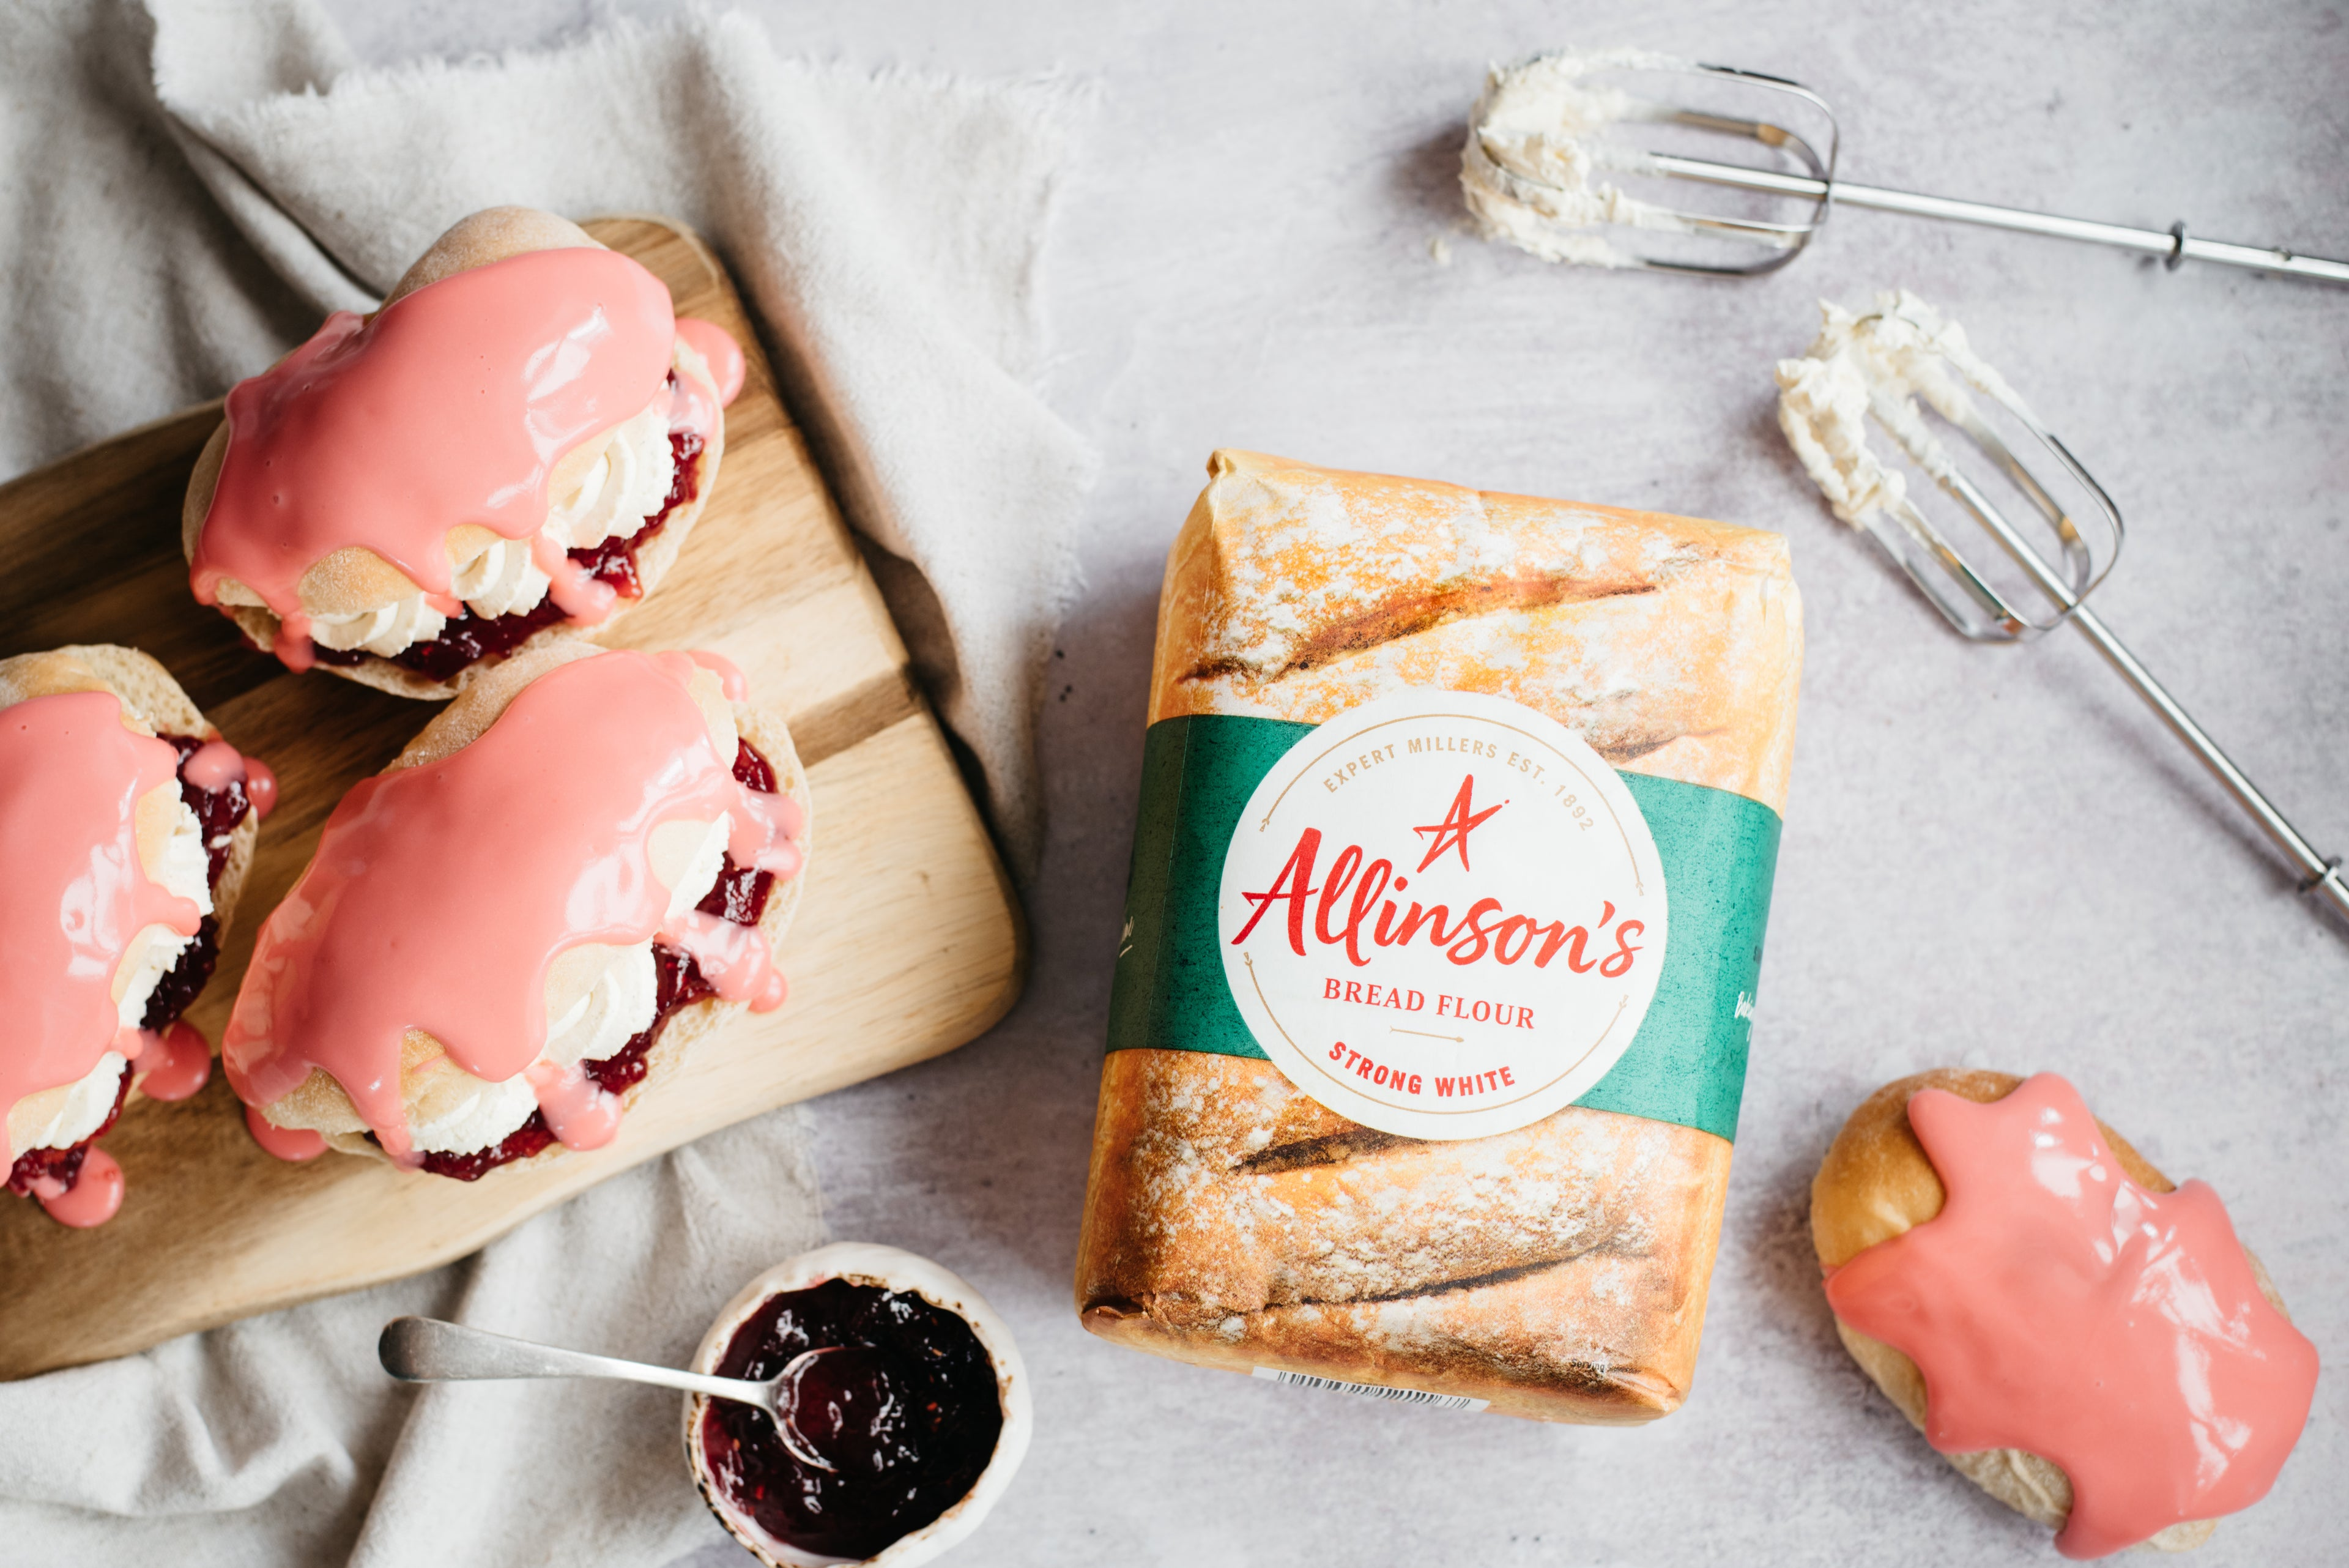 Flat lay of Iced Finger Buns drizzled in pink icing, next to a bag of Allinson's strong white flour, and whisks covered in mixture